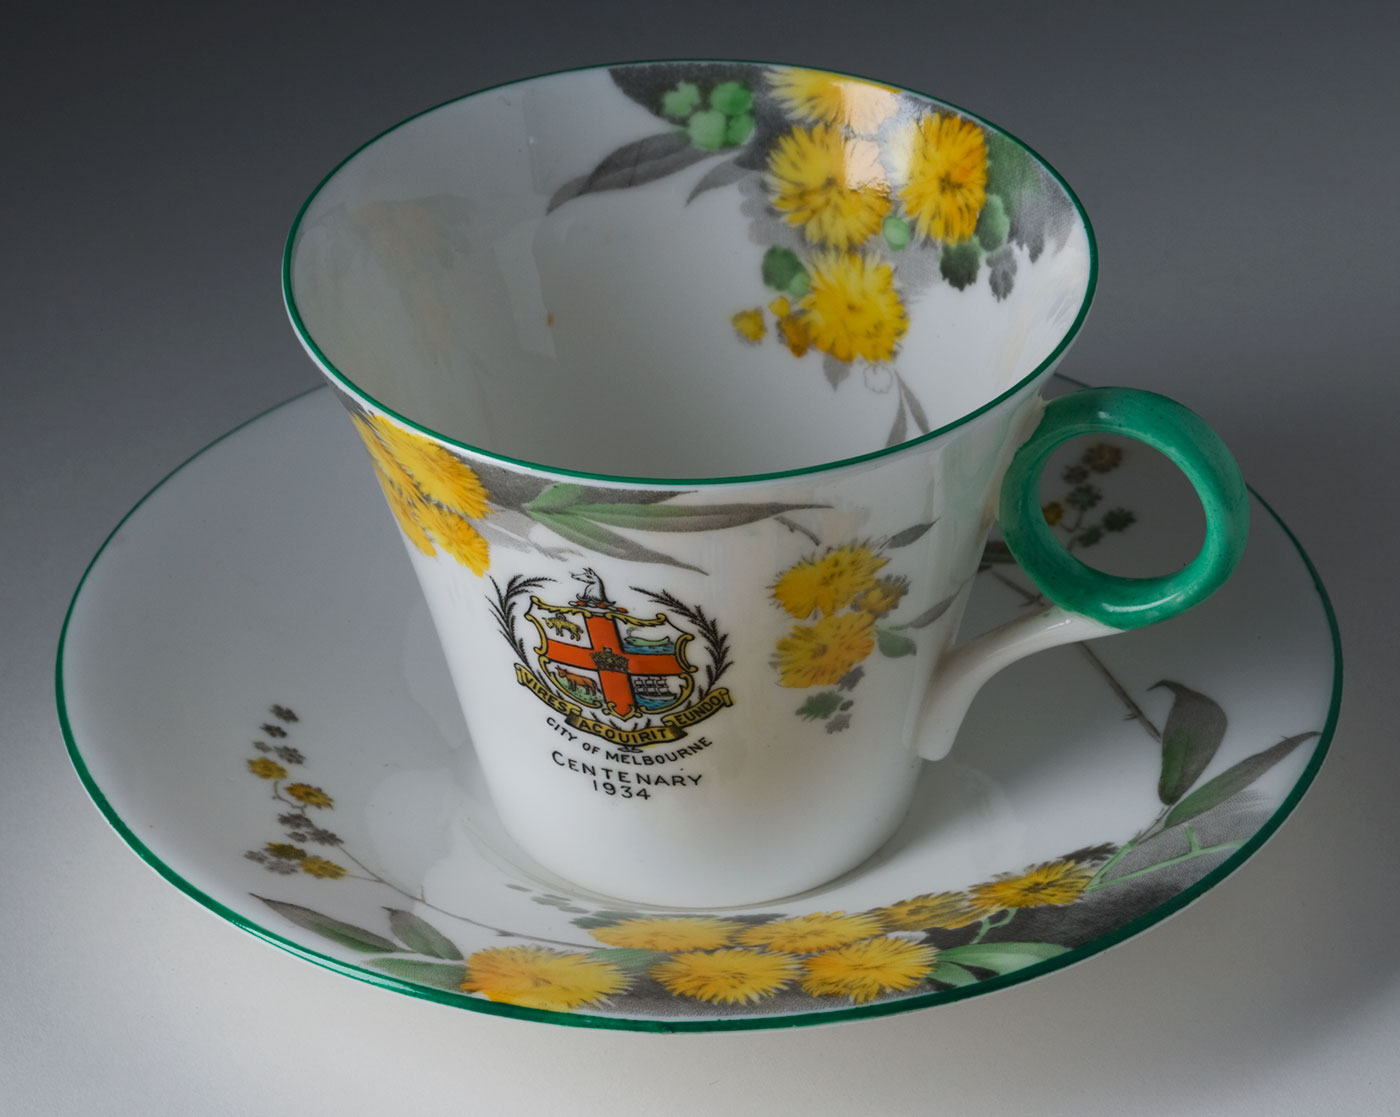 White china cup and saucer set painted with yellow wattle blossoms and pale green gum leaves. The 'City of Melbourne' emblem appears on the front of the cup with the words 'Centenary 1934'. The cup's handle is painted green. - click to view larger image